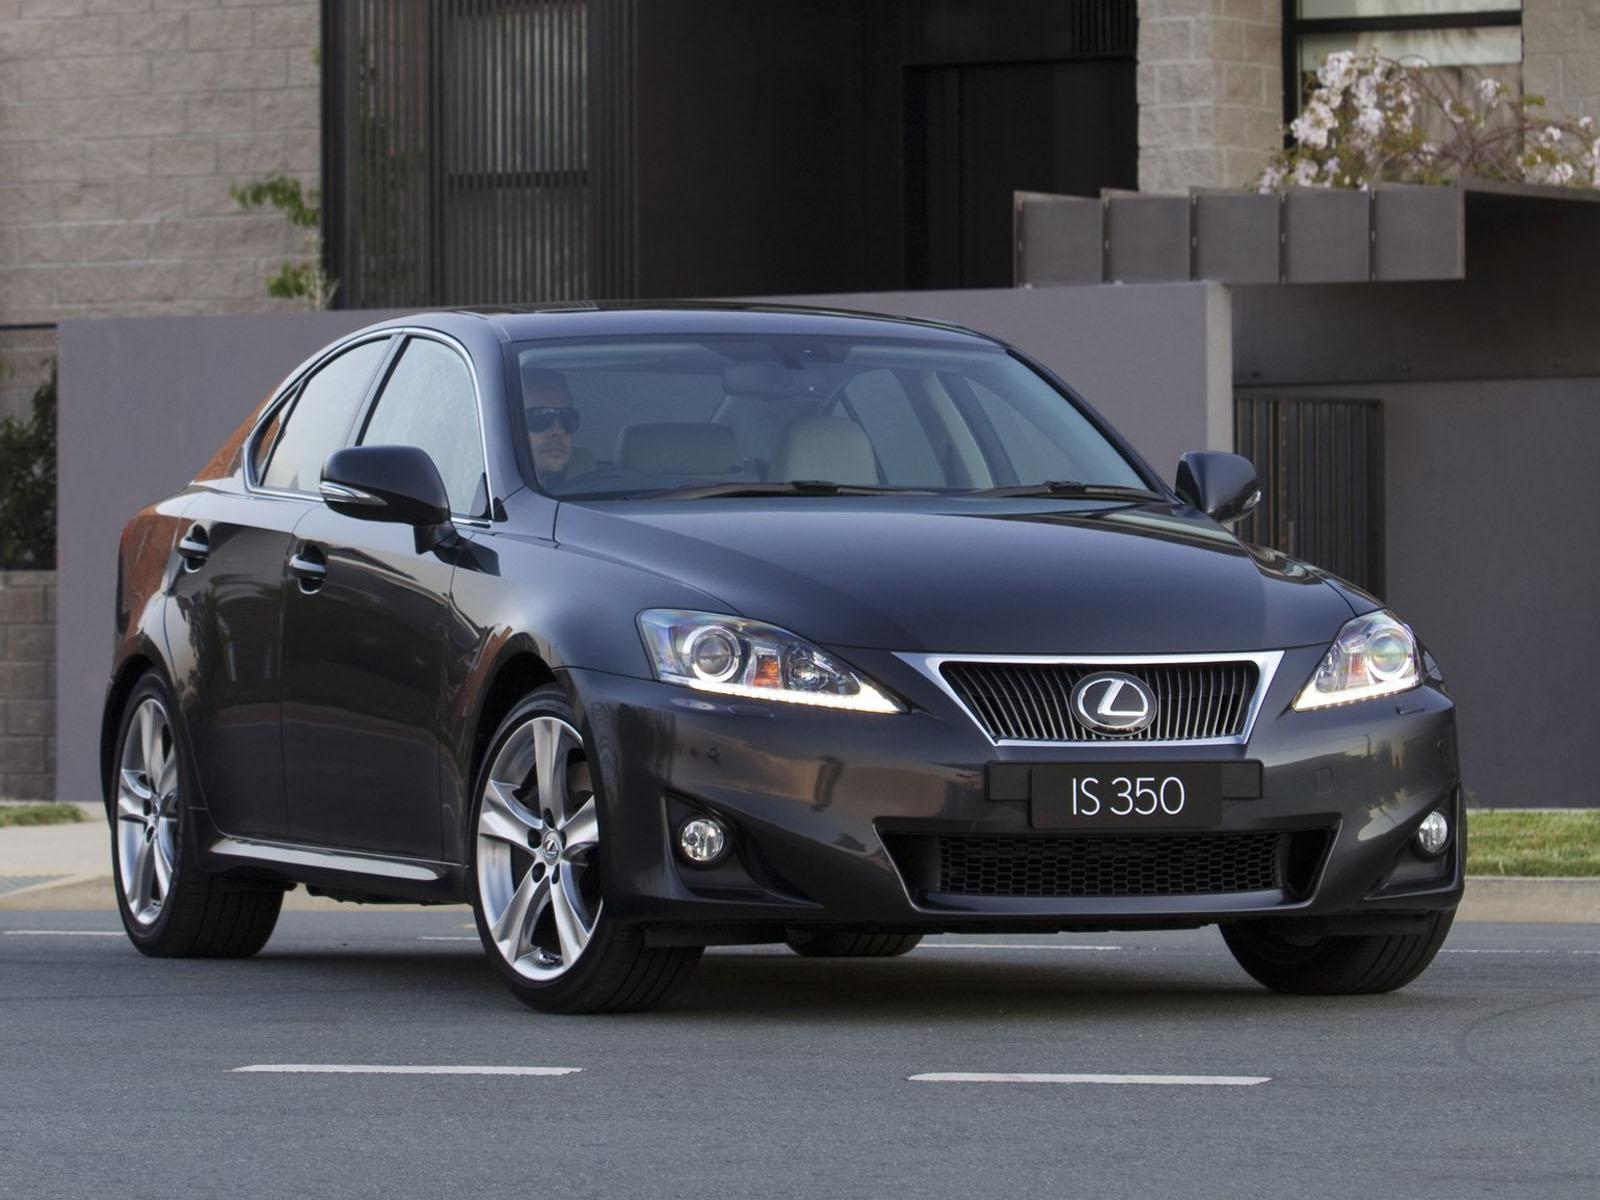 2011 lexus is 350 information and photos zombiedrive. Black Bedroom Furniture Sets. Home Design Ideas